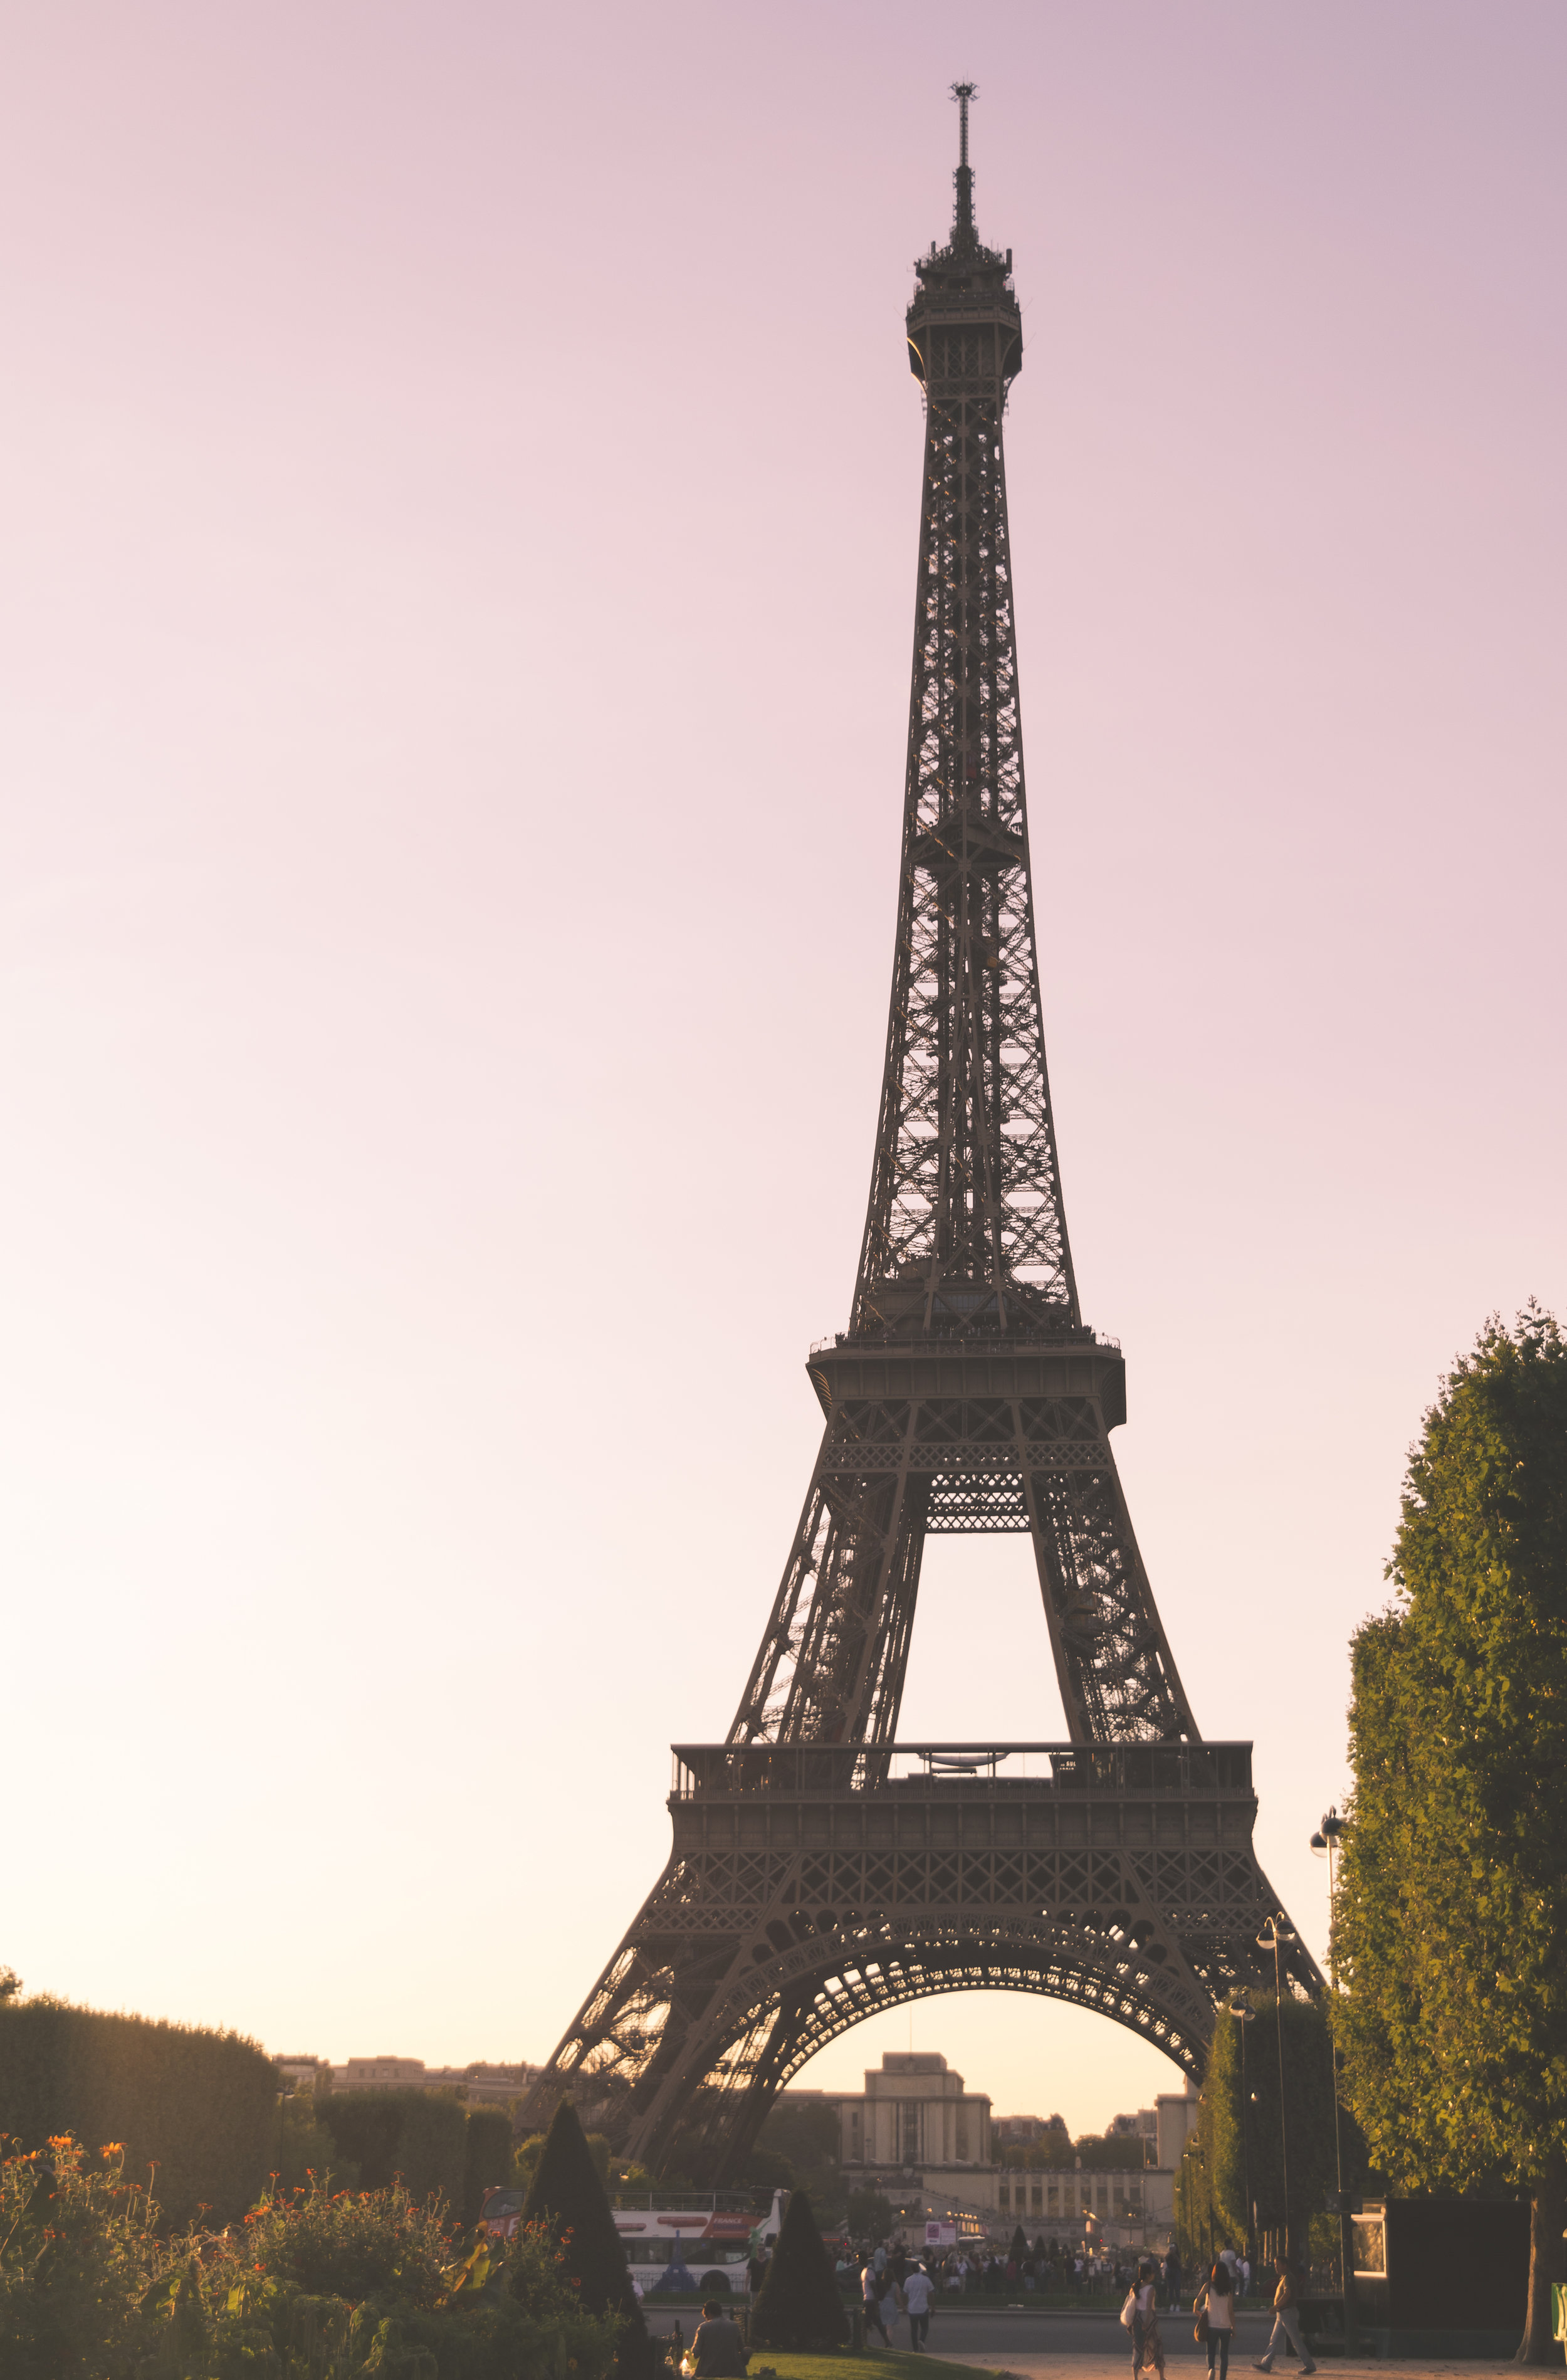 Tour Eiffel at Sunset, Paris